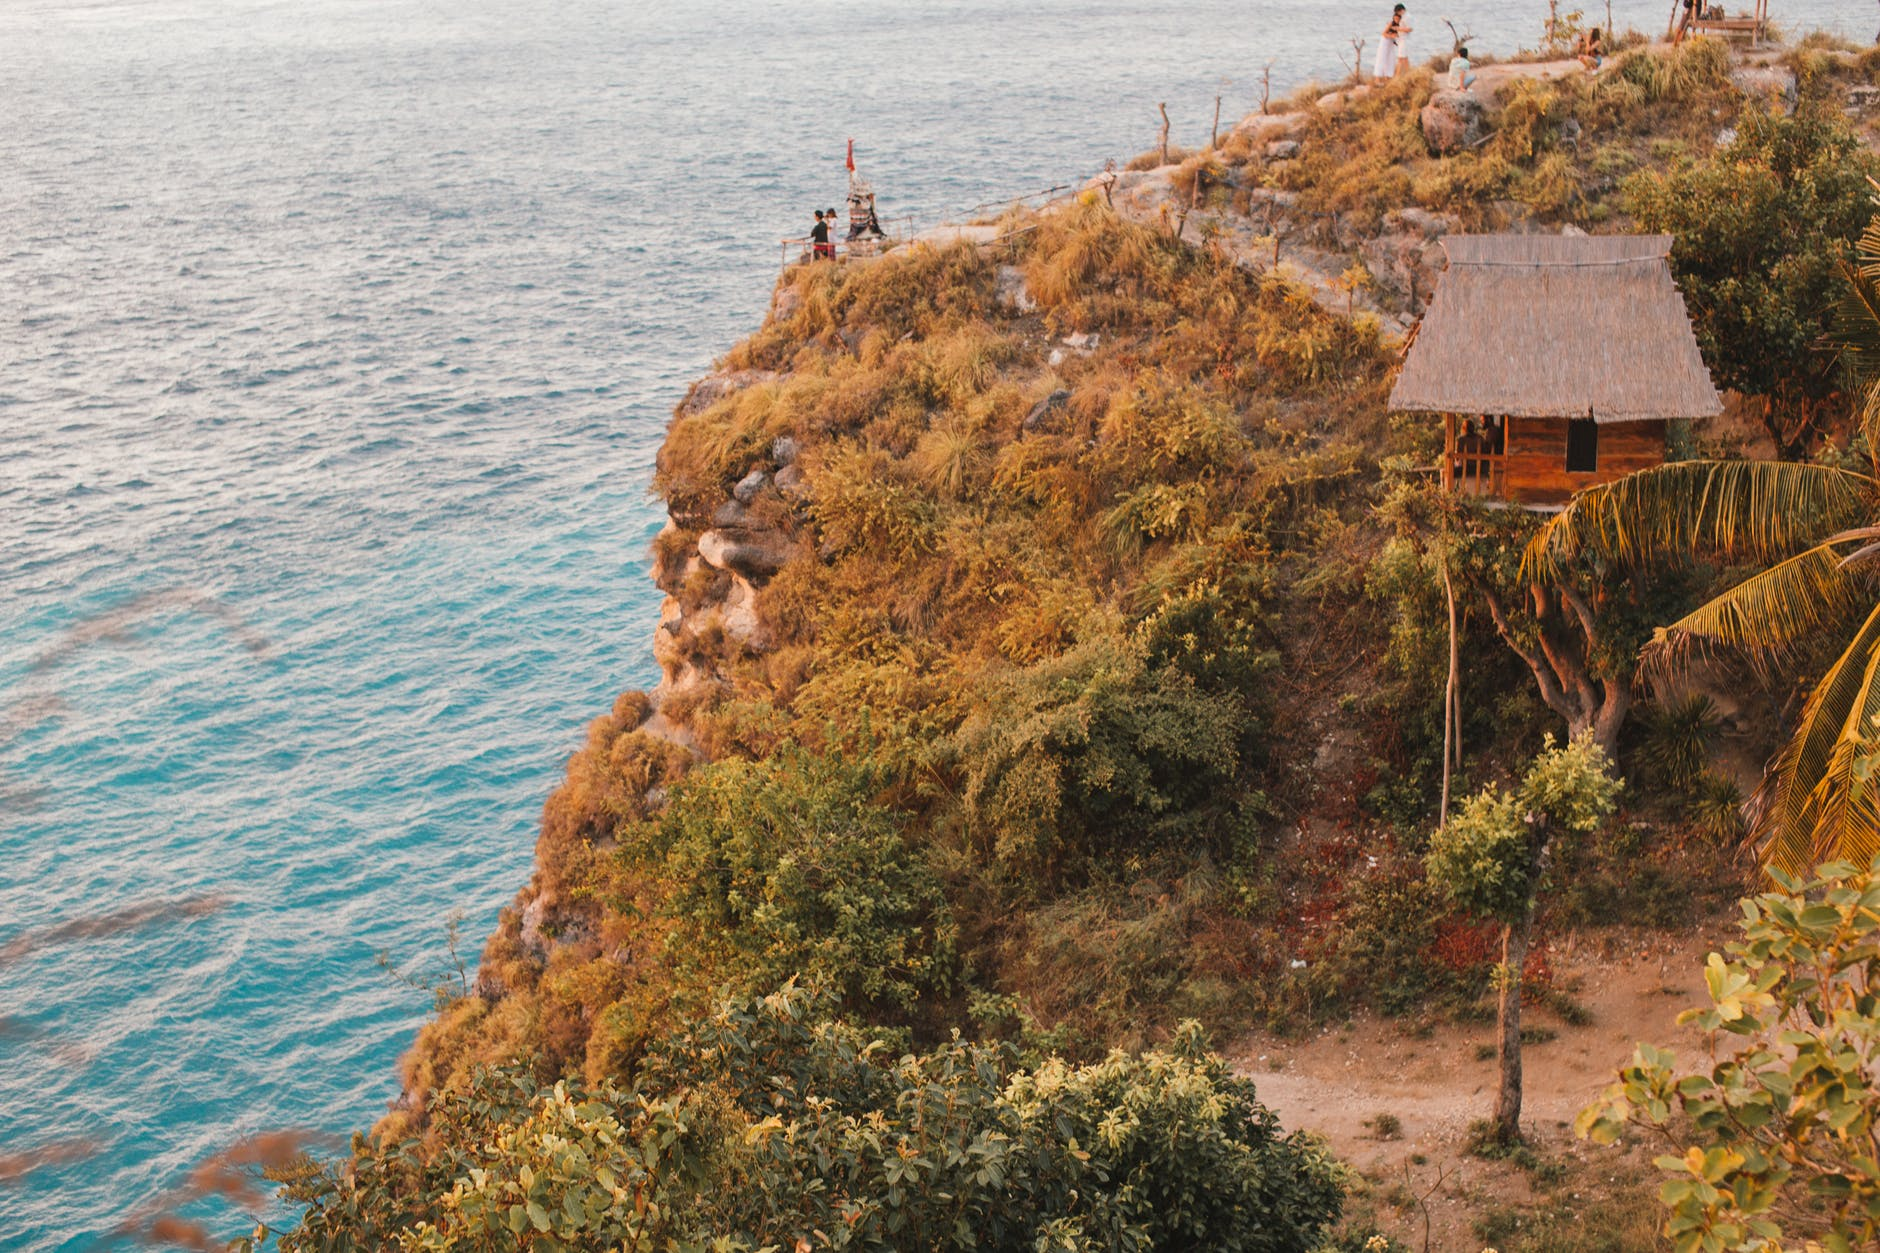 vacanze in Italia rocky coast with vegetation and treehouse